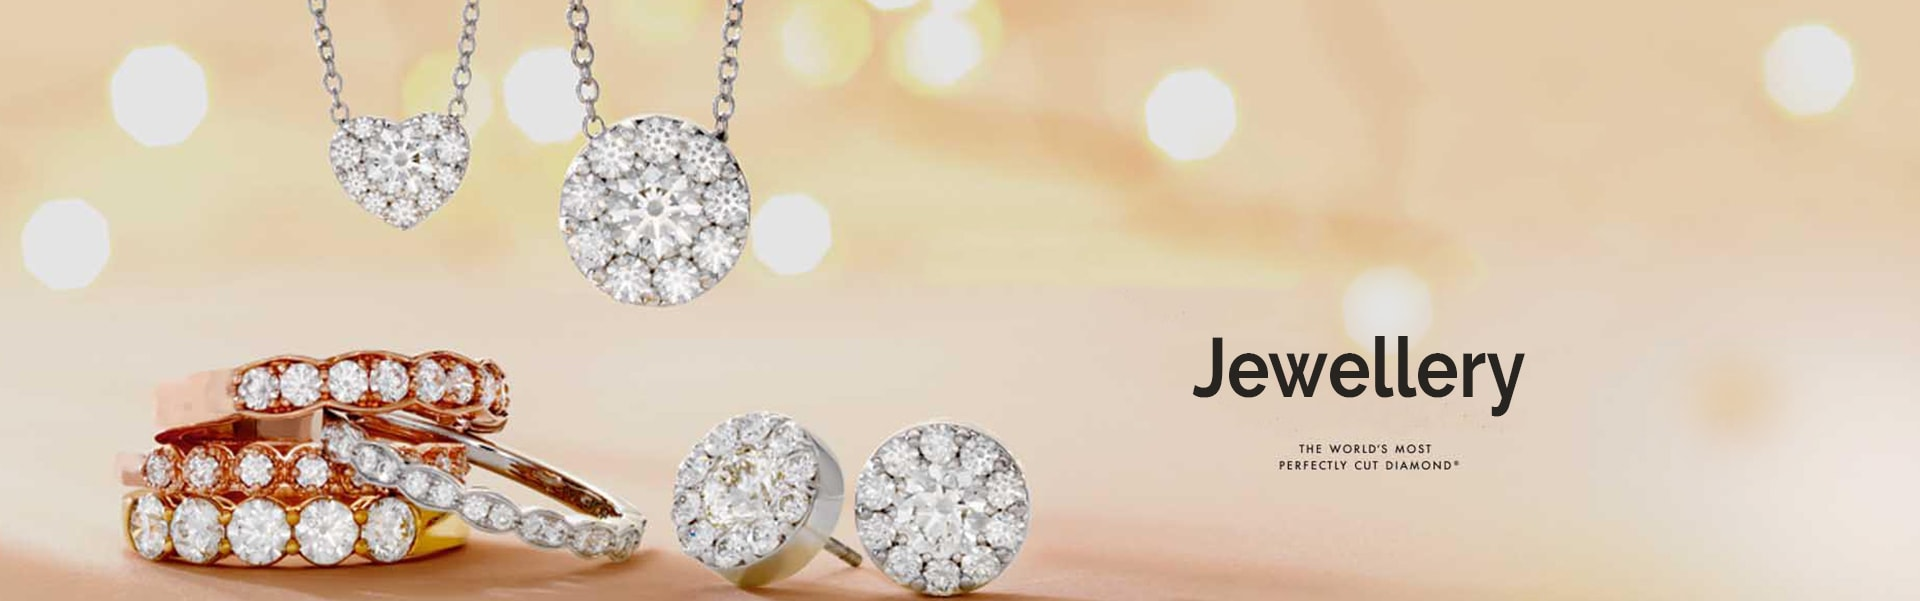 jewellery-ecommerce-website-design-services